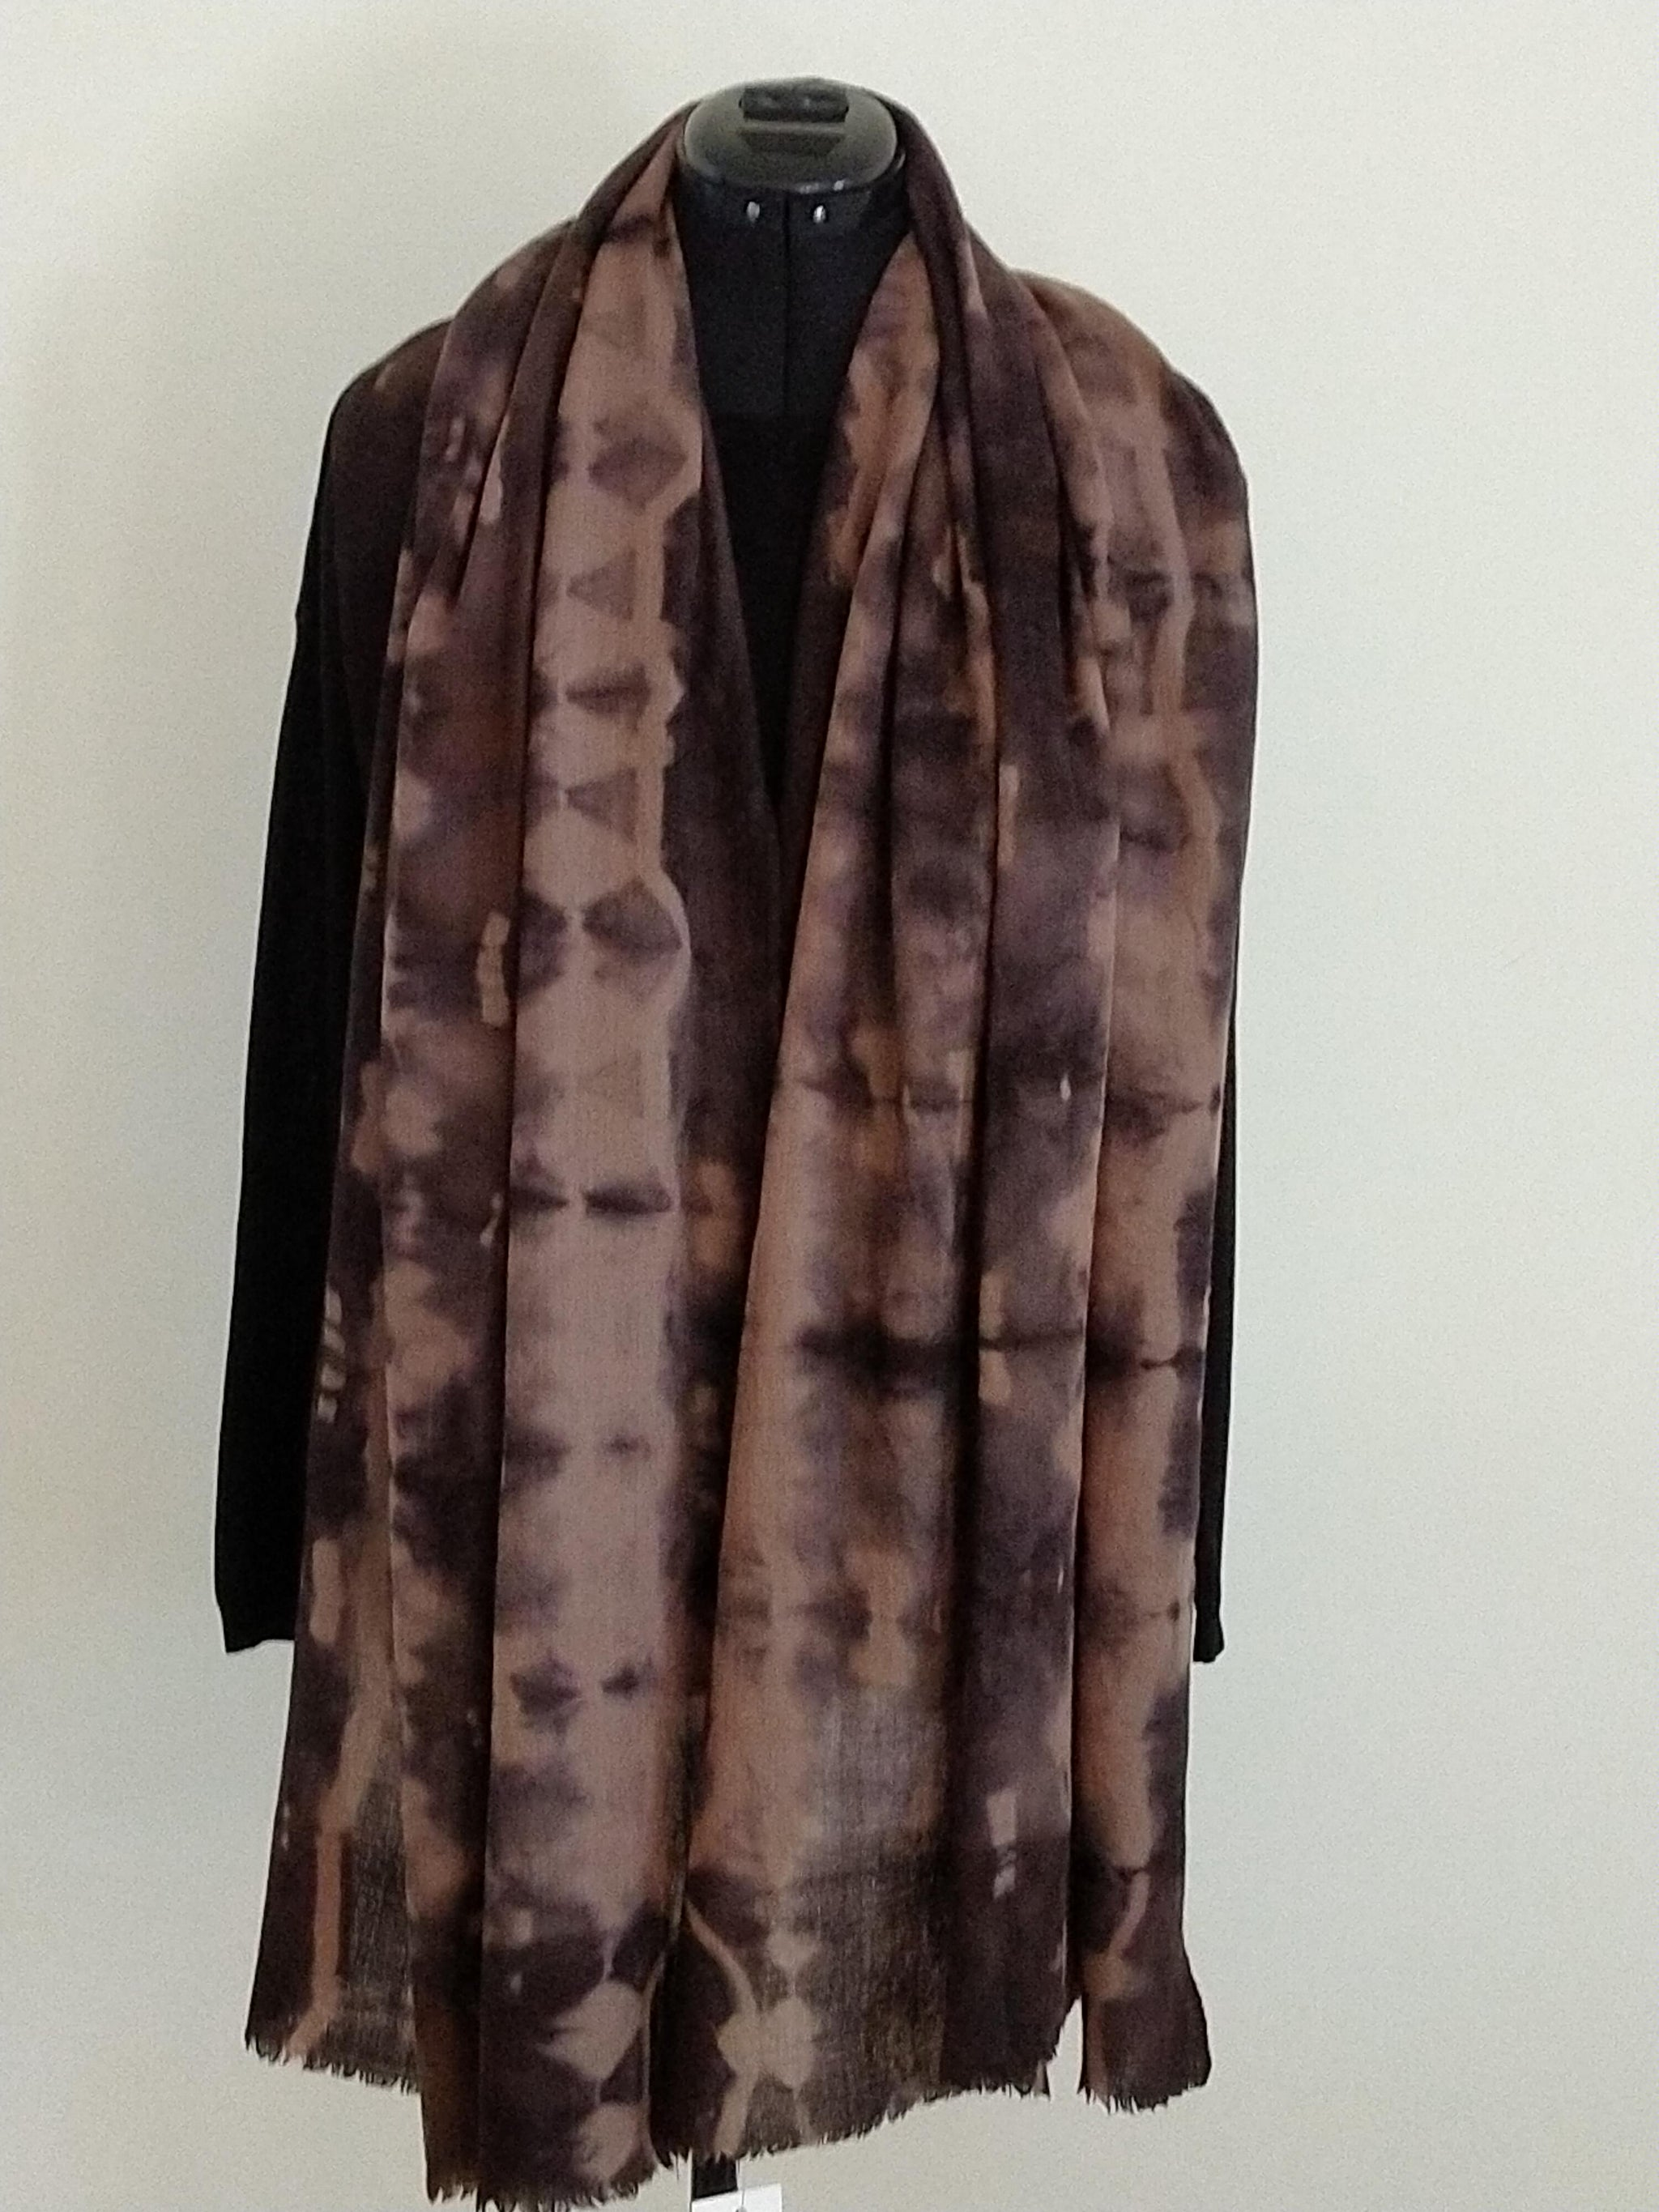 Cosy Pashmina shawl hand dyed by Neelam Singhal